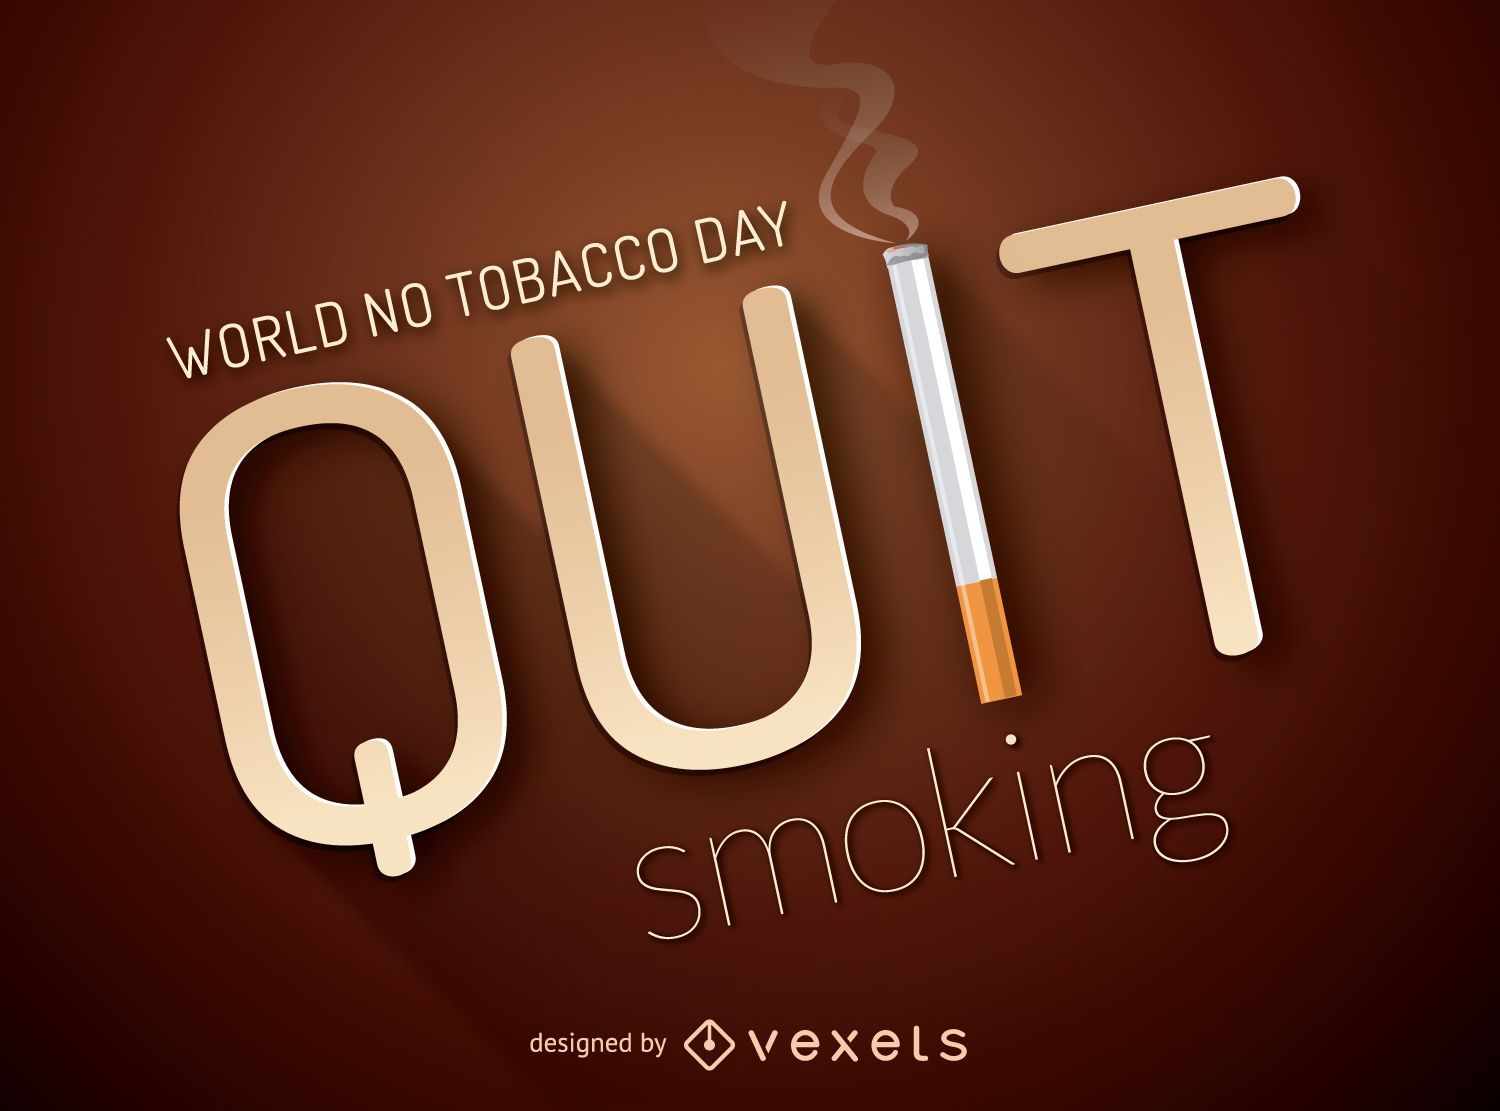 Quit smoking poster with cigarette